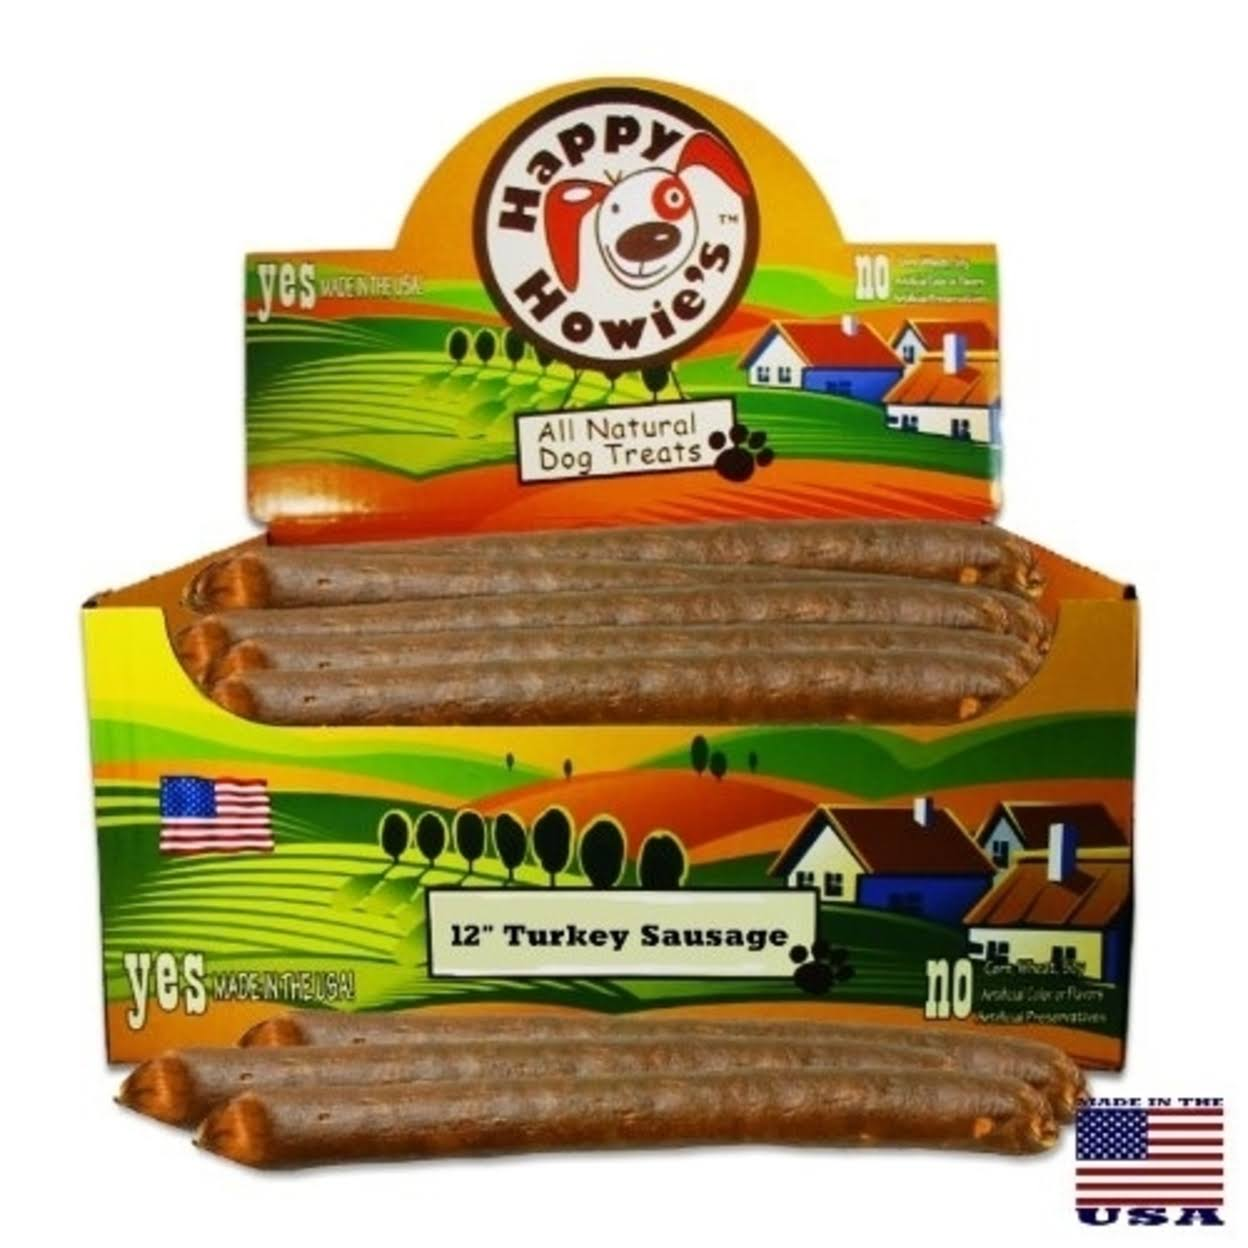 "Happy Howie's Turkey Sausage for Dogs - 12"" 36 Count Case"